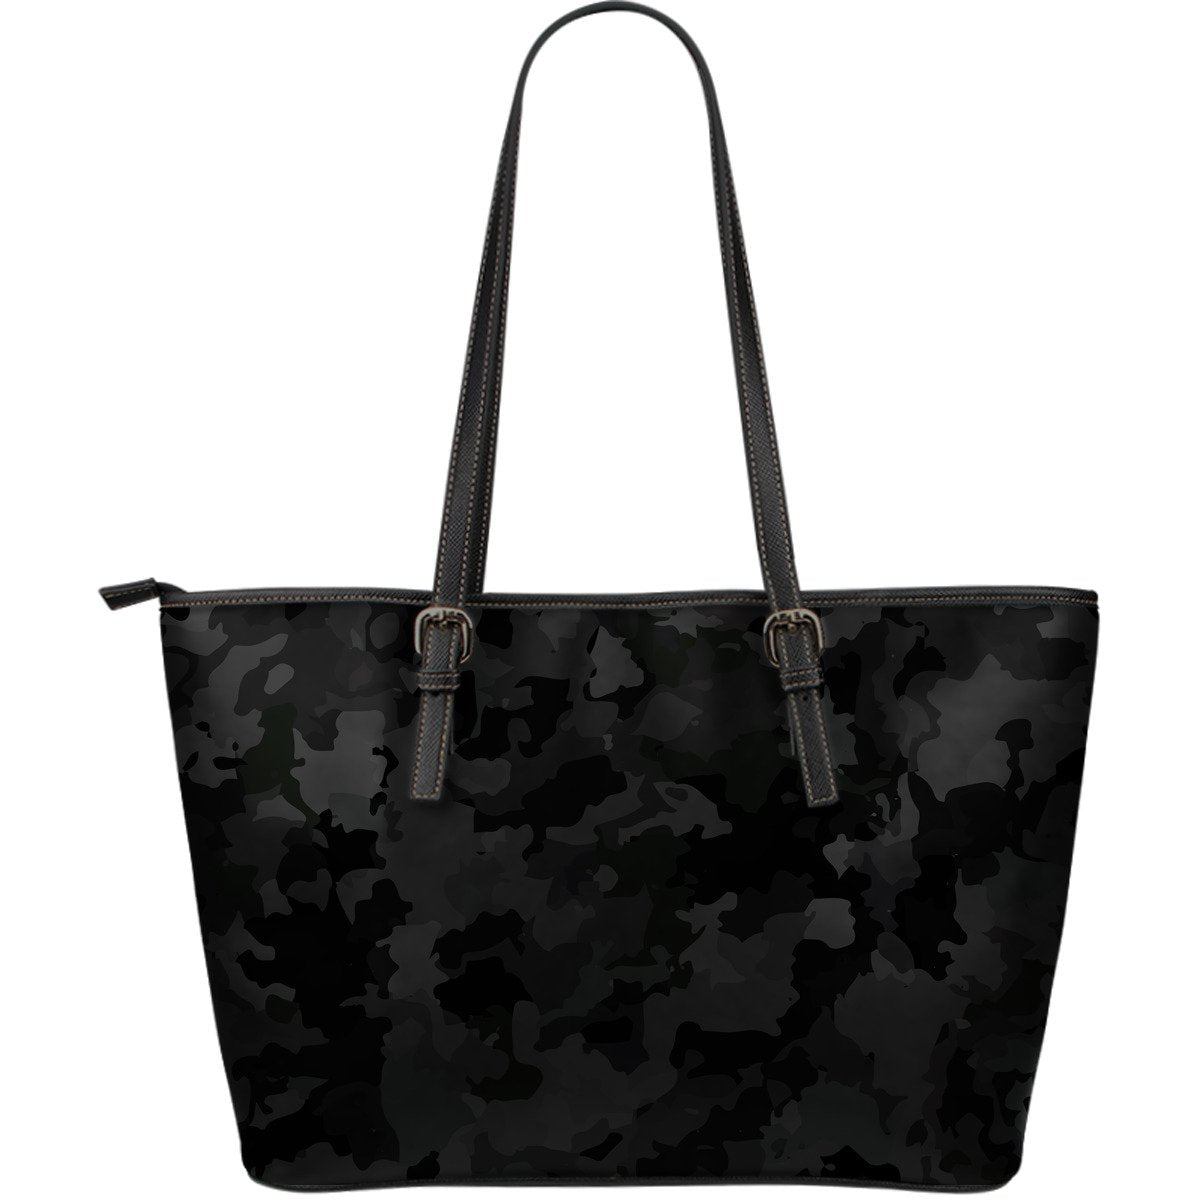 Black Camouflage Print Leather Tote Bag GearFrost